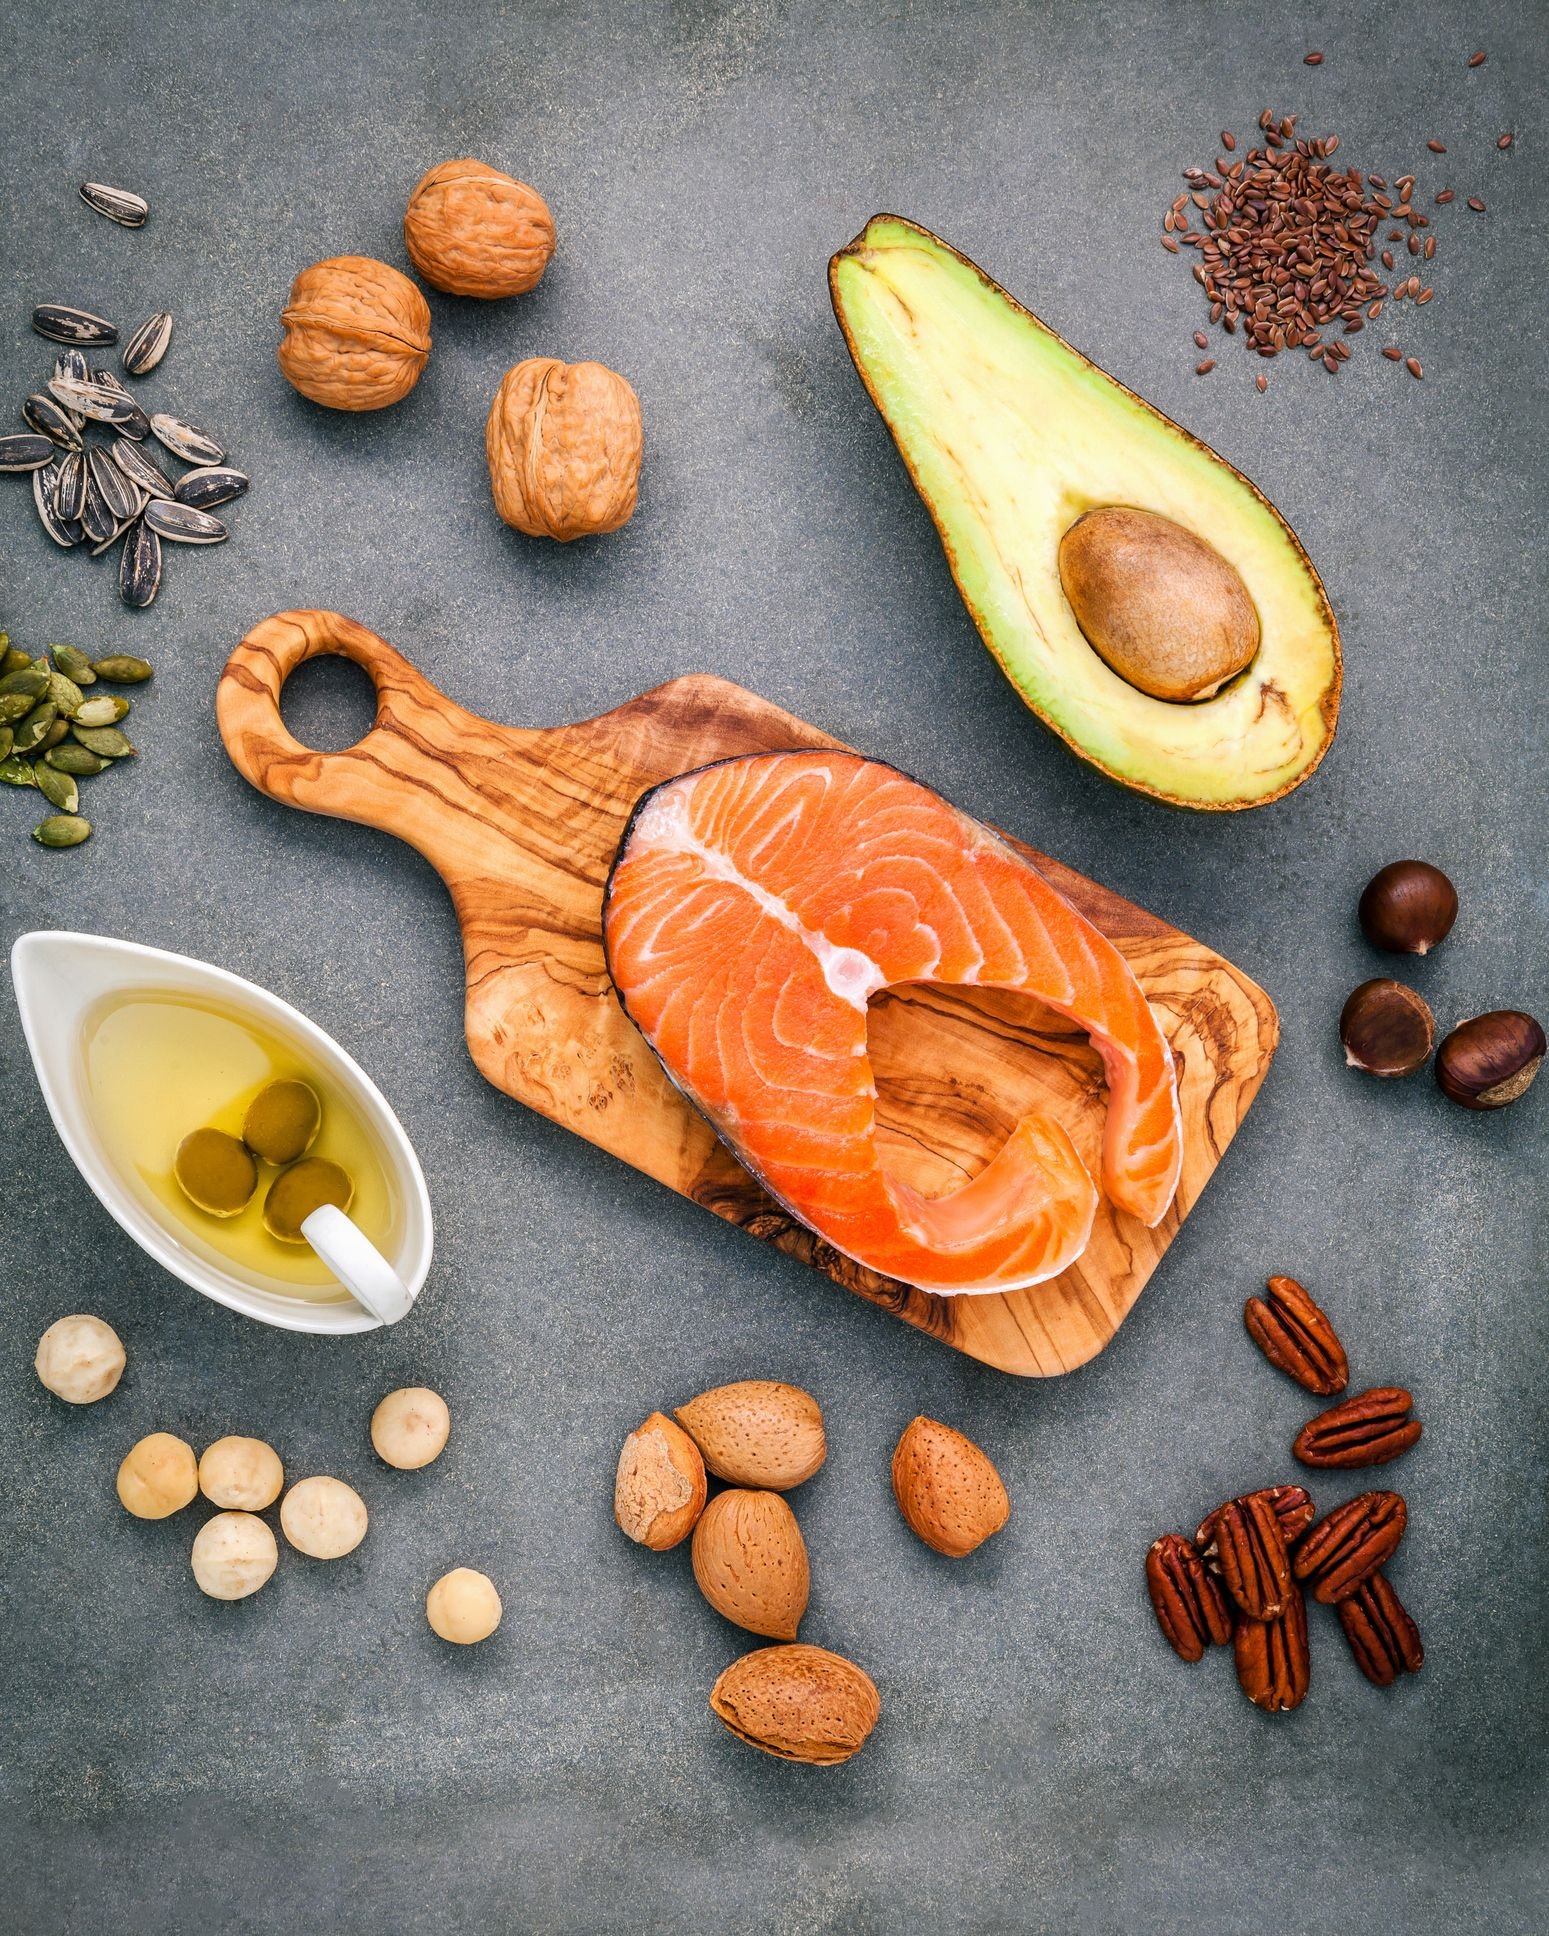 The Most Popular Diet The Year You Were Born - Fad Trend Diets